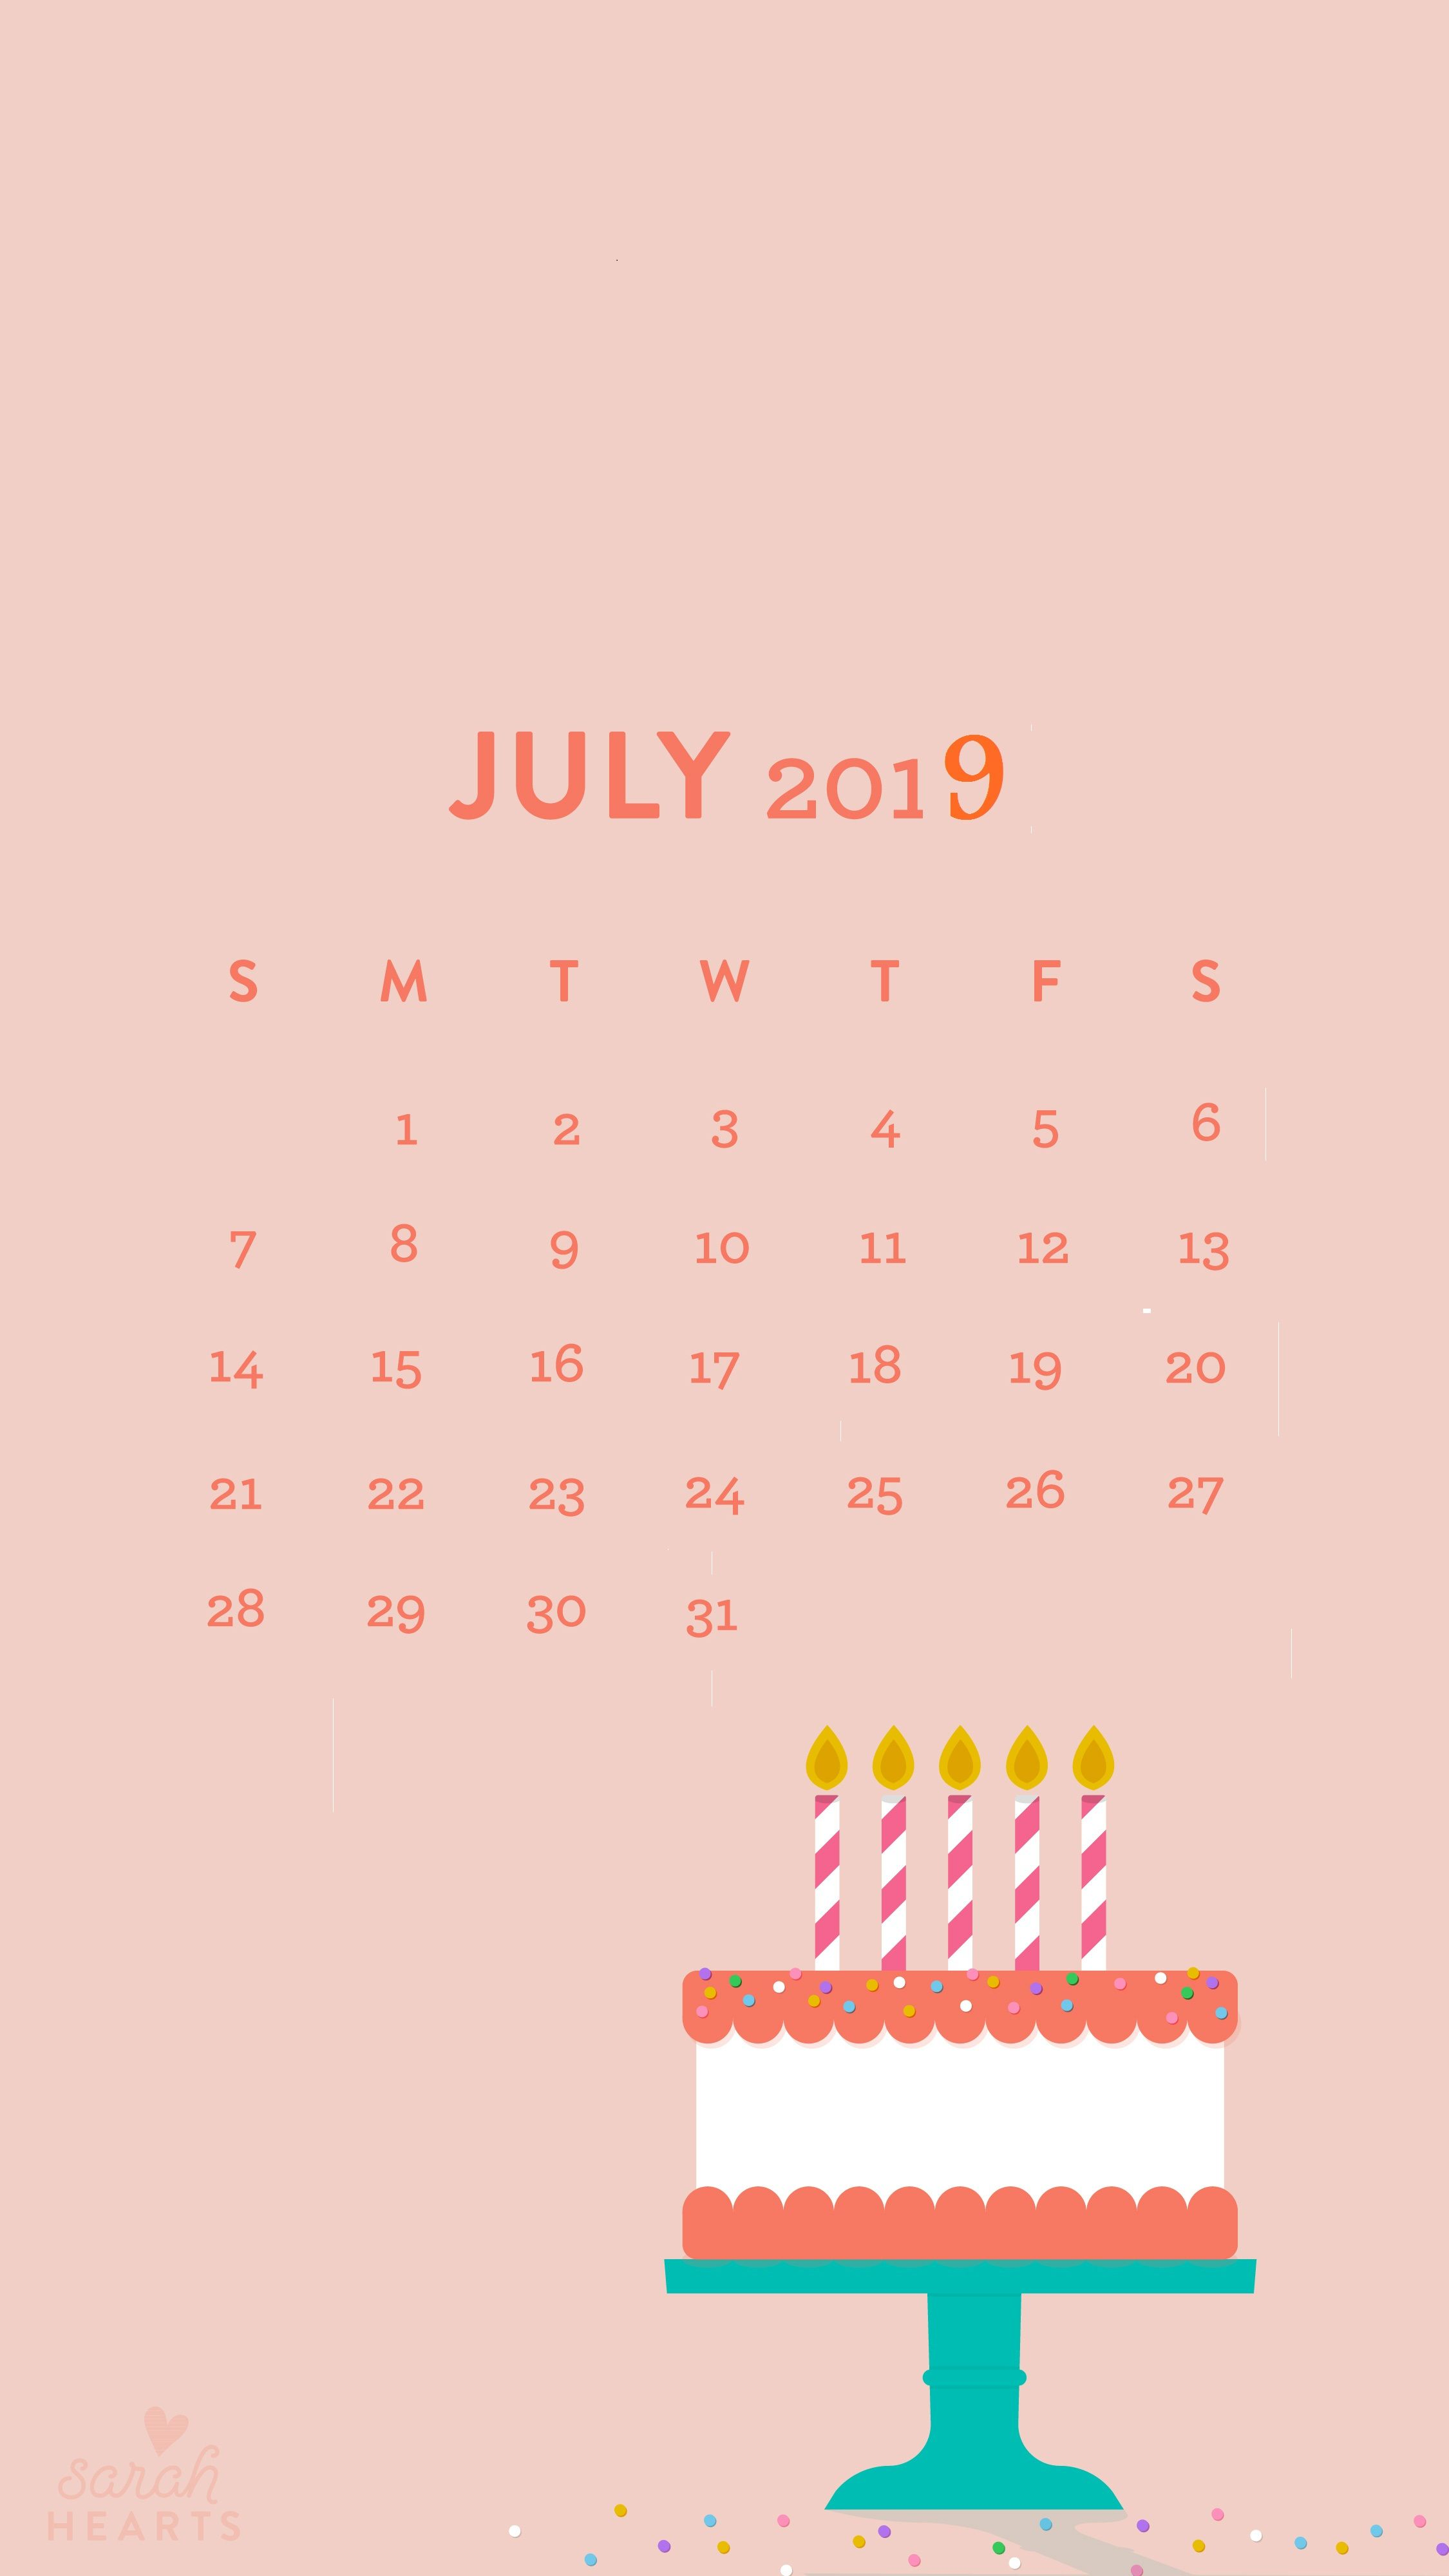 July 2019 Iphone Calendar Wallpaper Calendar Wallpaper Free